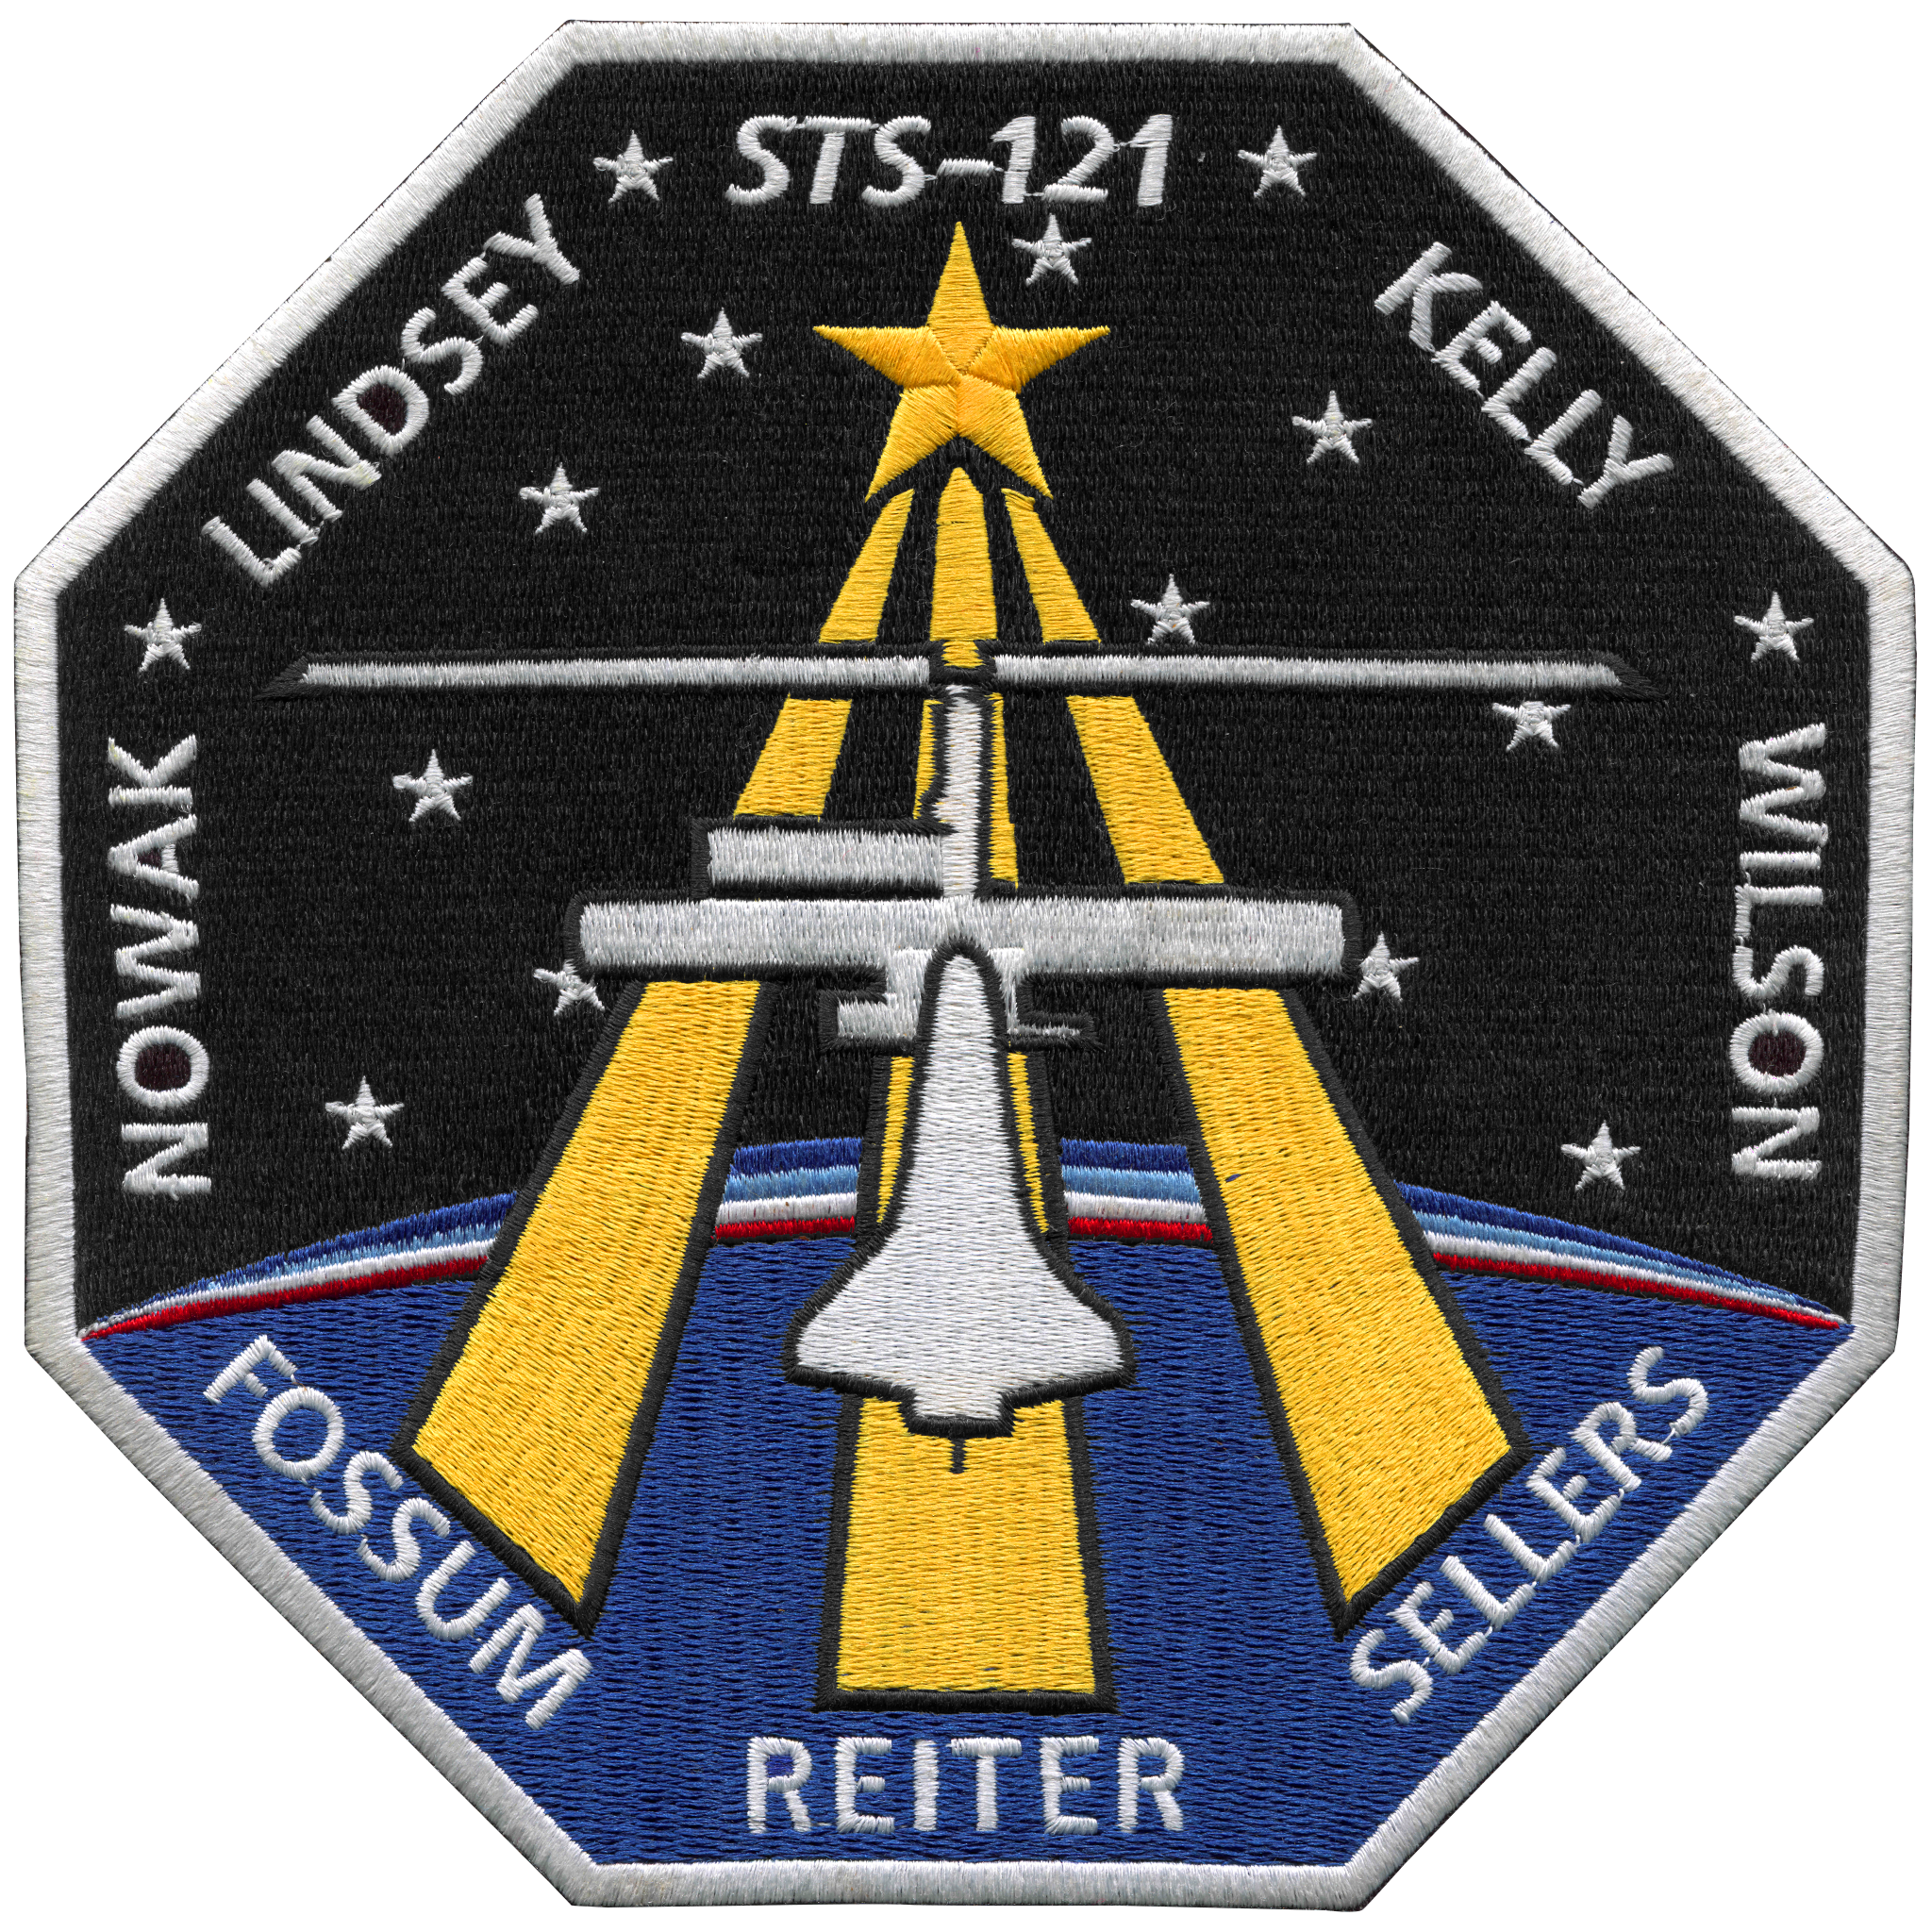 STS-121 Back-Patch | Astronomy, Patches, Space shuttle